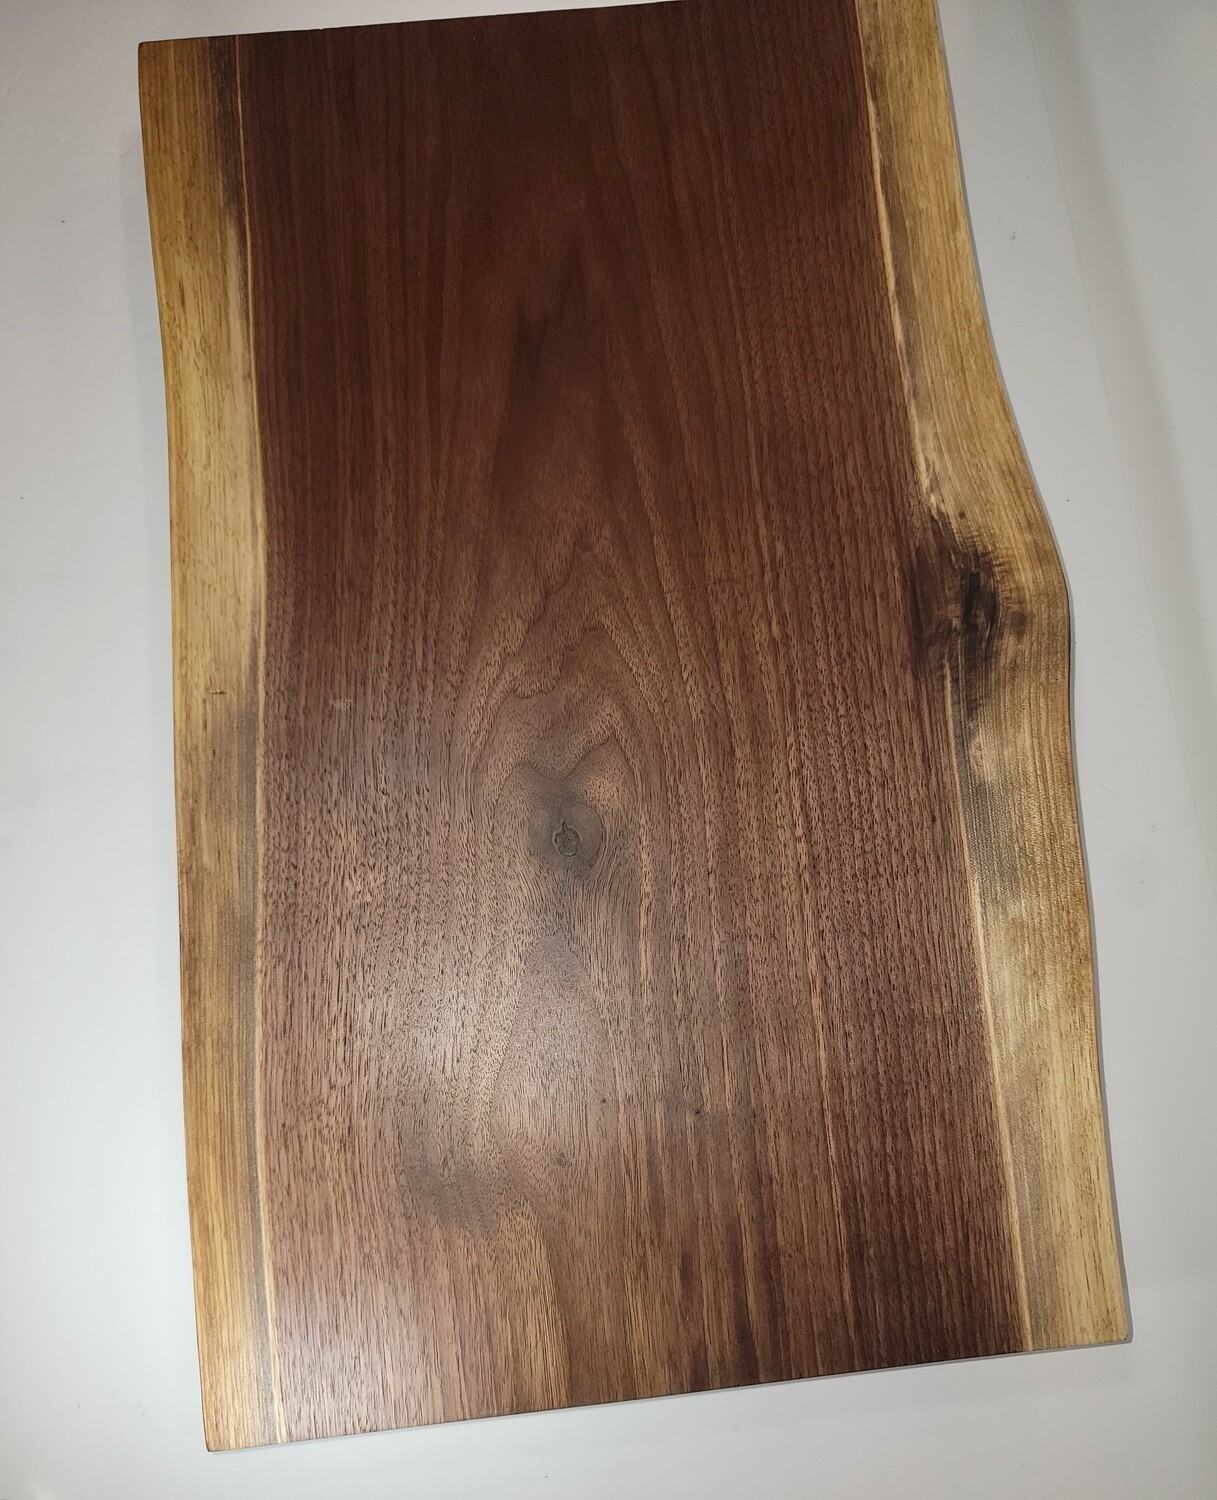 Large Live Edge Charcuterie Board/Serving Tray